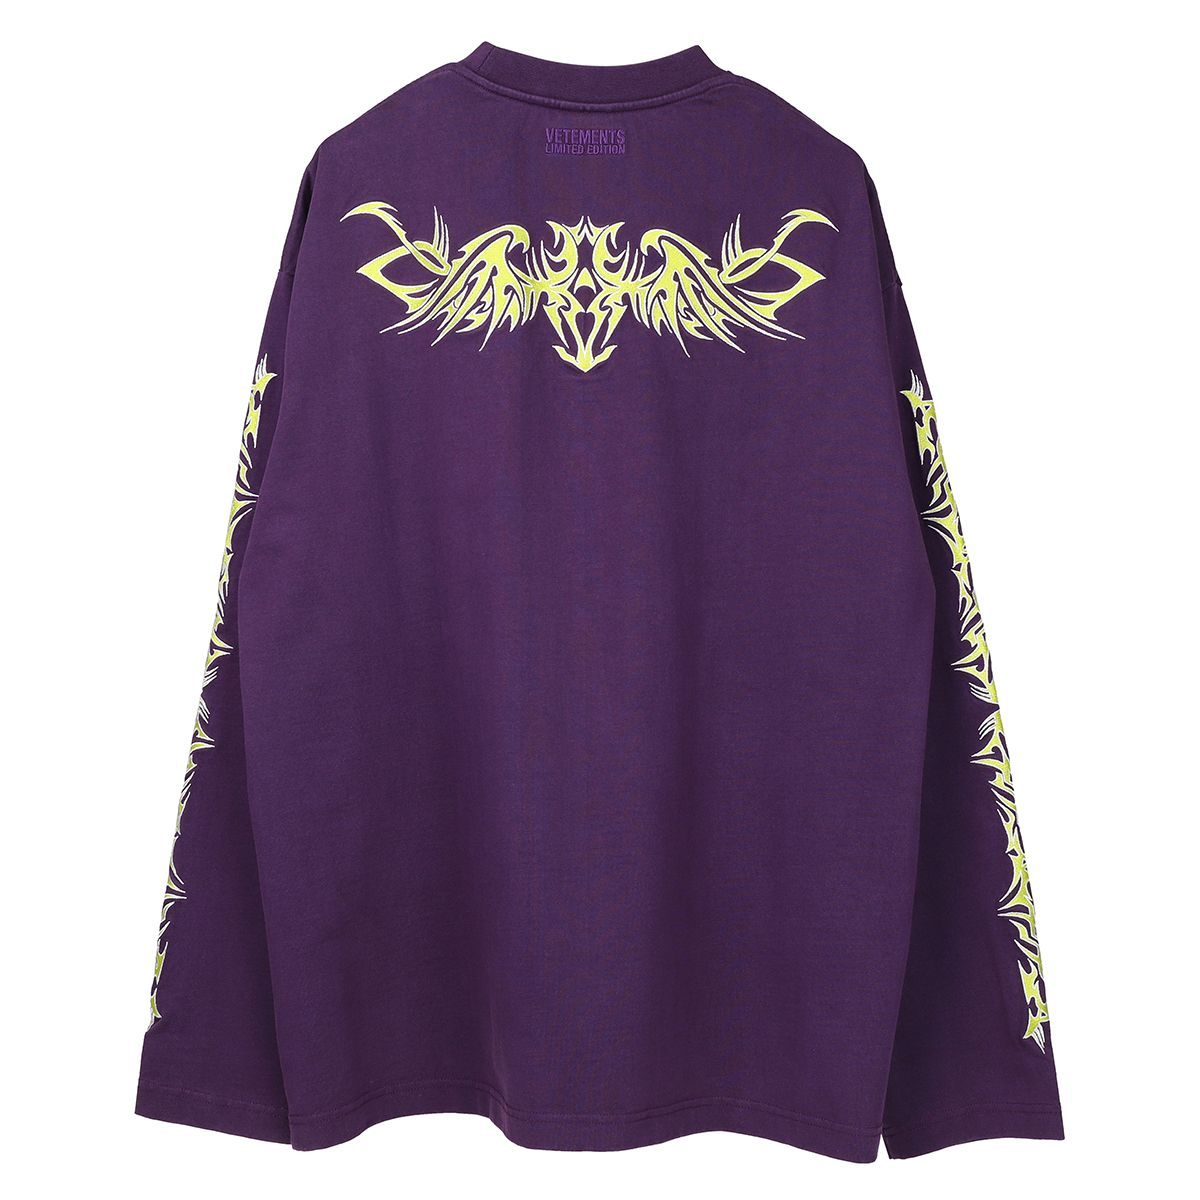 VETEMENTS TRIBAL EMBROIDERED LONGSLEEVE / PURPLE-NEON GREEN